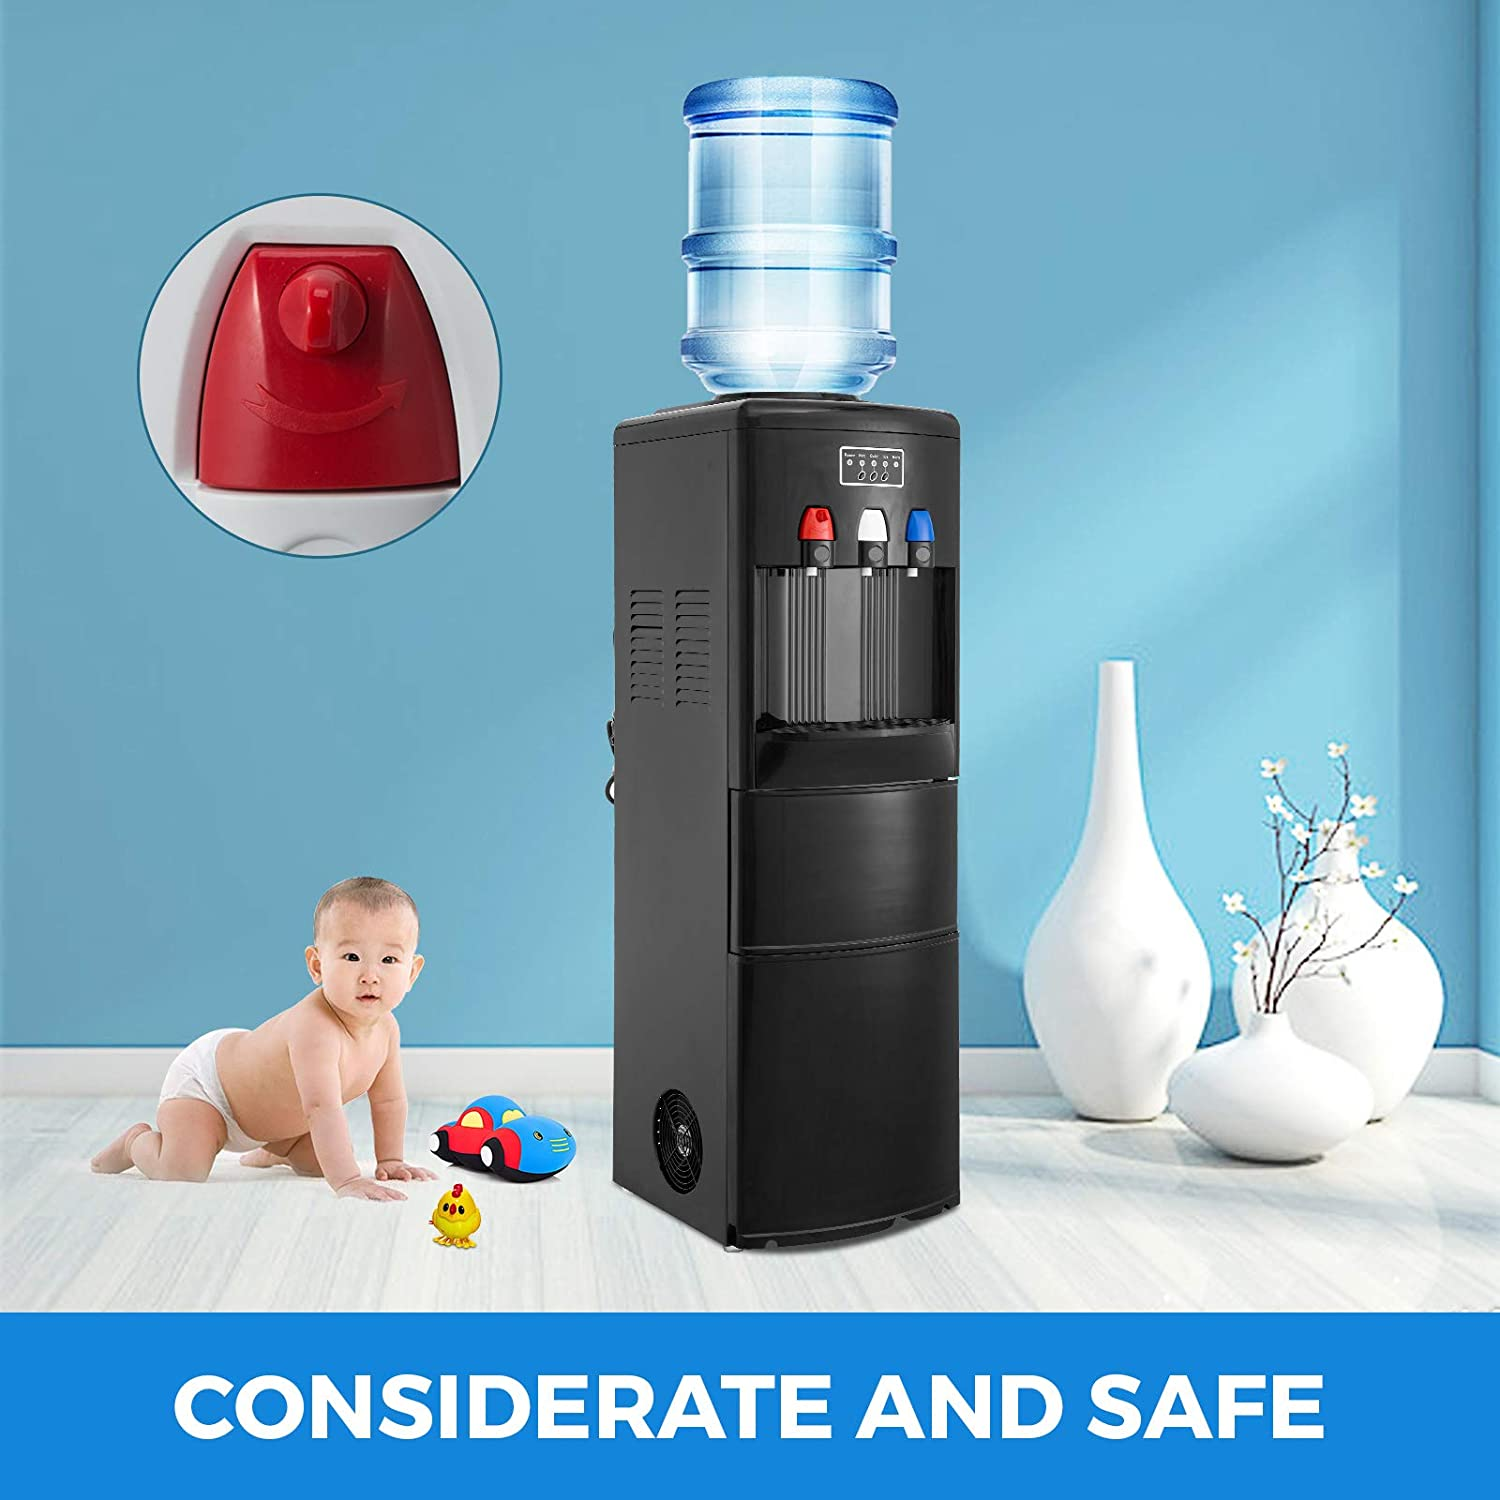 VBENLEM 2 in 1Water Cooler Dispenser with Built in Ice Maker Machine Hot and Cold Top Loading 3 to 5 Gallon Bottle Electric Hot Cold Water Cooler Dispenser White